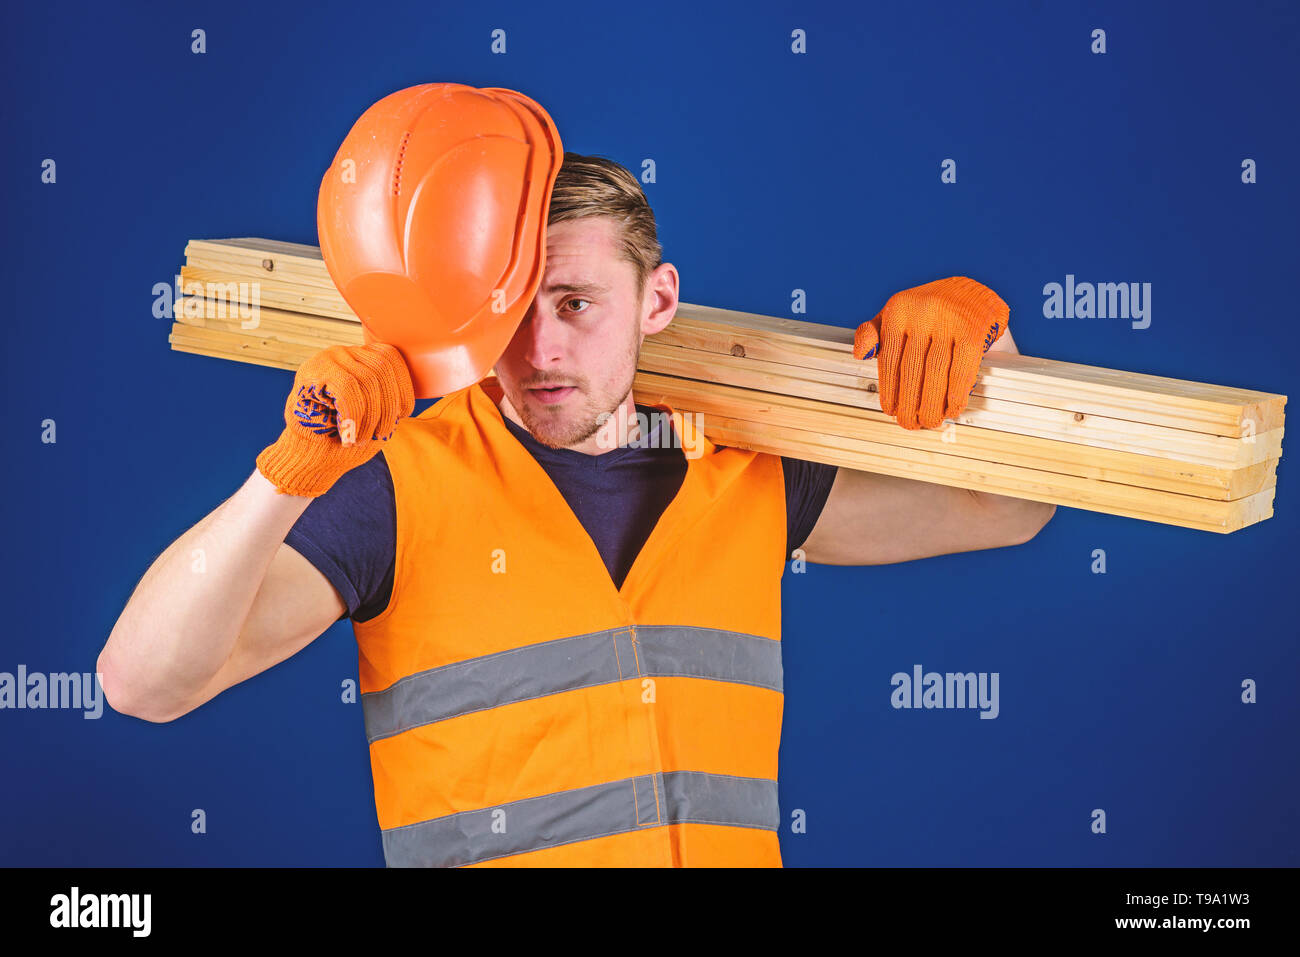 Protective equipment concept. Carpenter, woodworker, labourer, builder carries wooden beam on shoulder. Man in protective gloves holds visor of helmet, corrects hard hat on head, blue background. Stock Photo